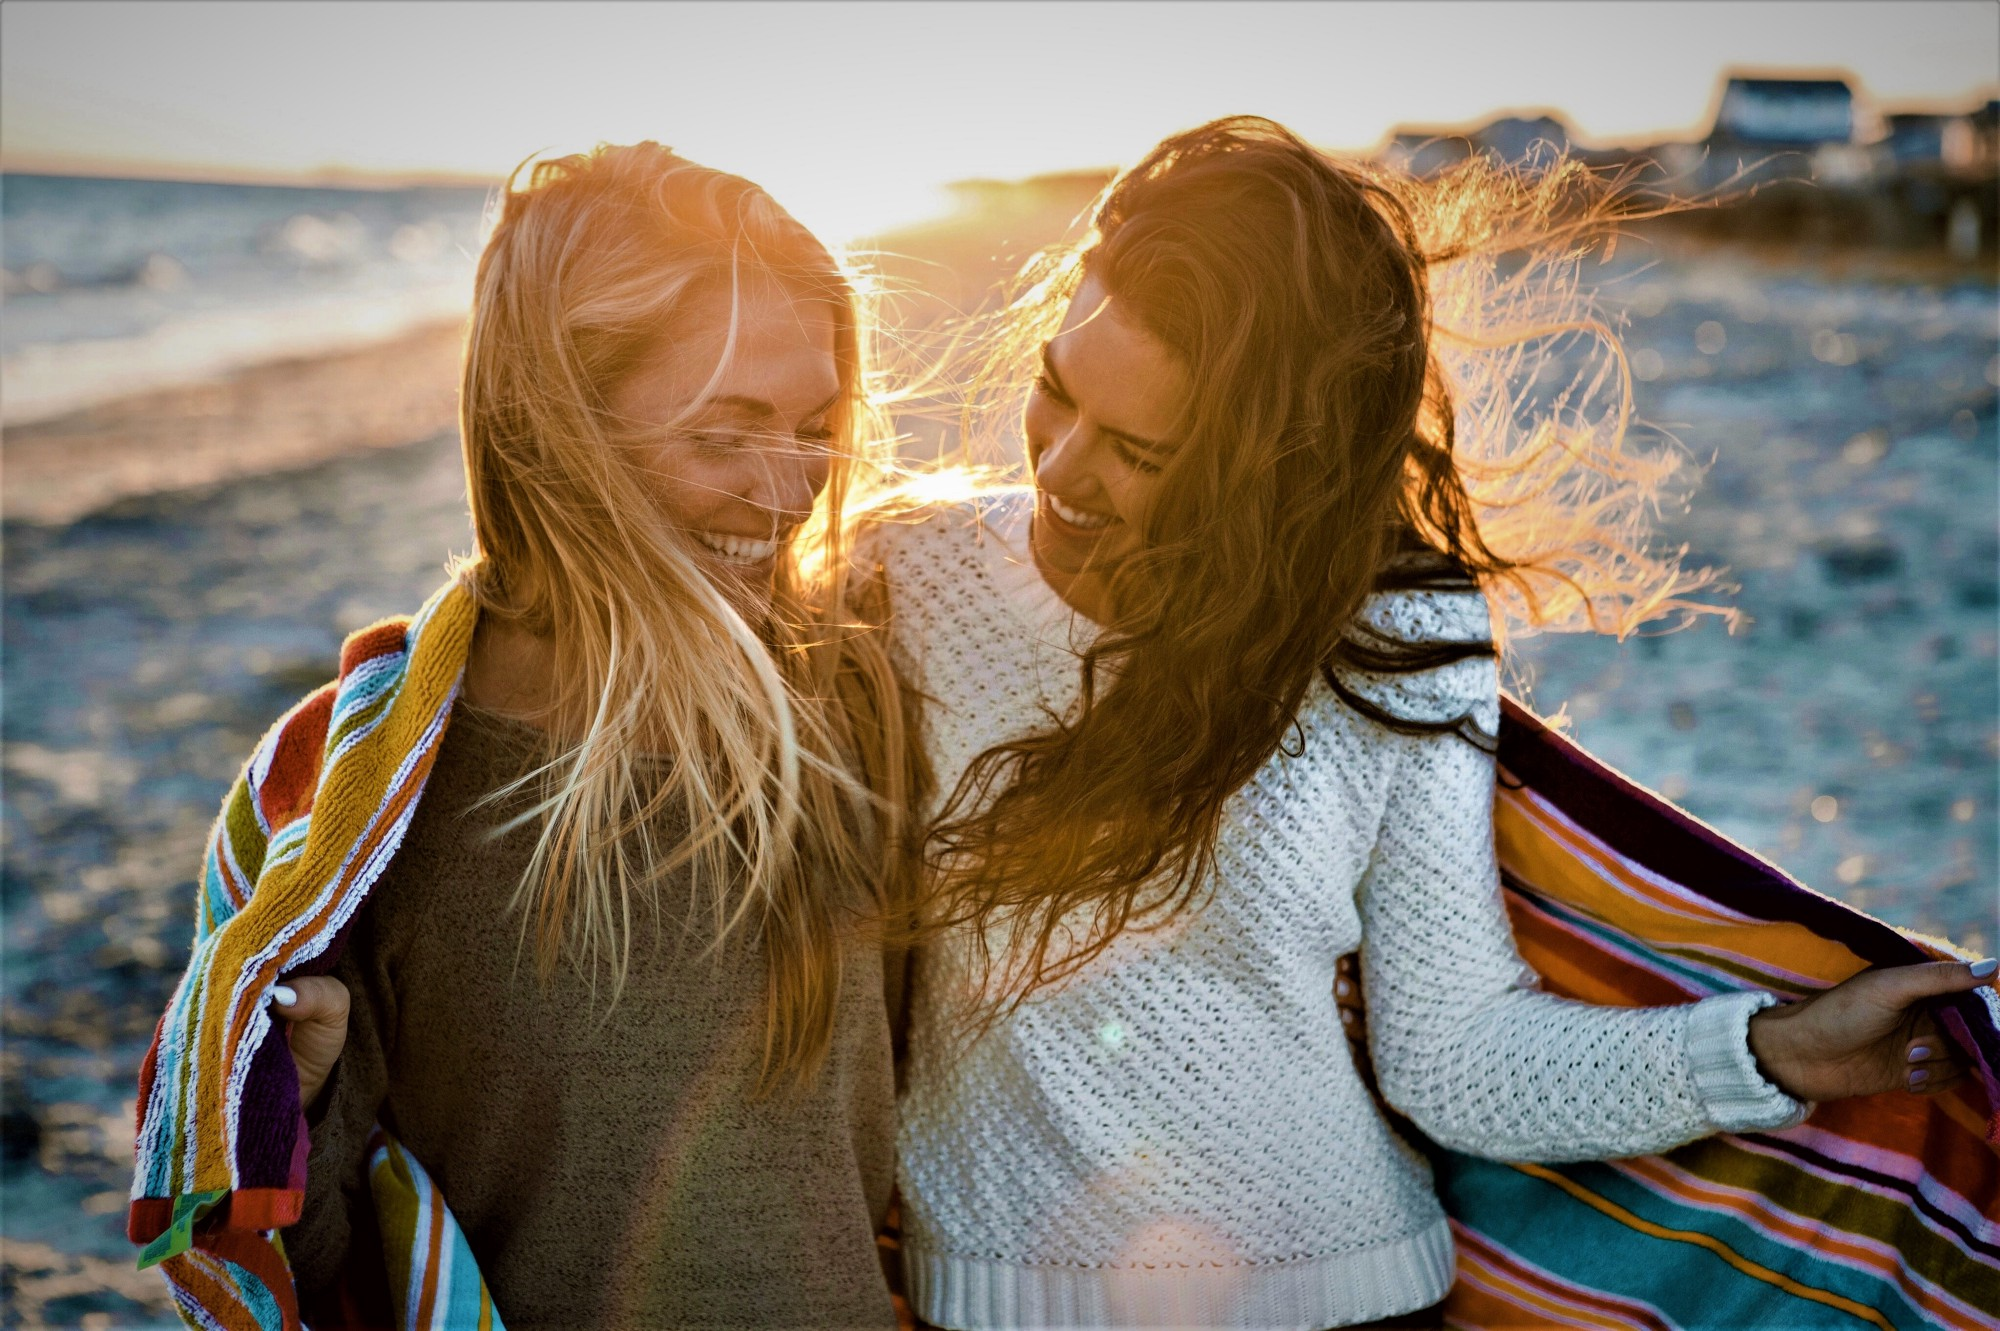 two smiling girls walking down beach with towel wrapped around them